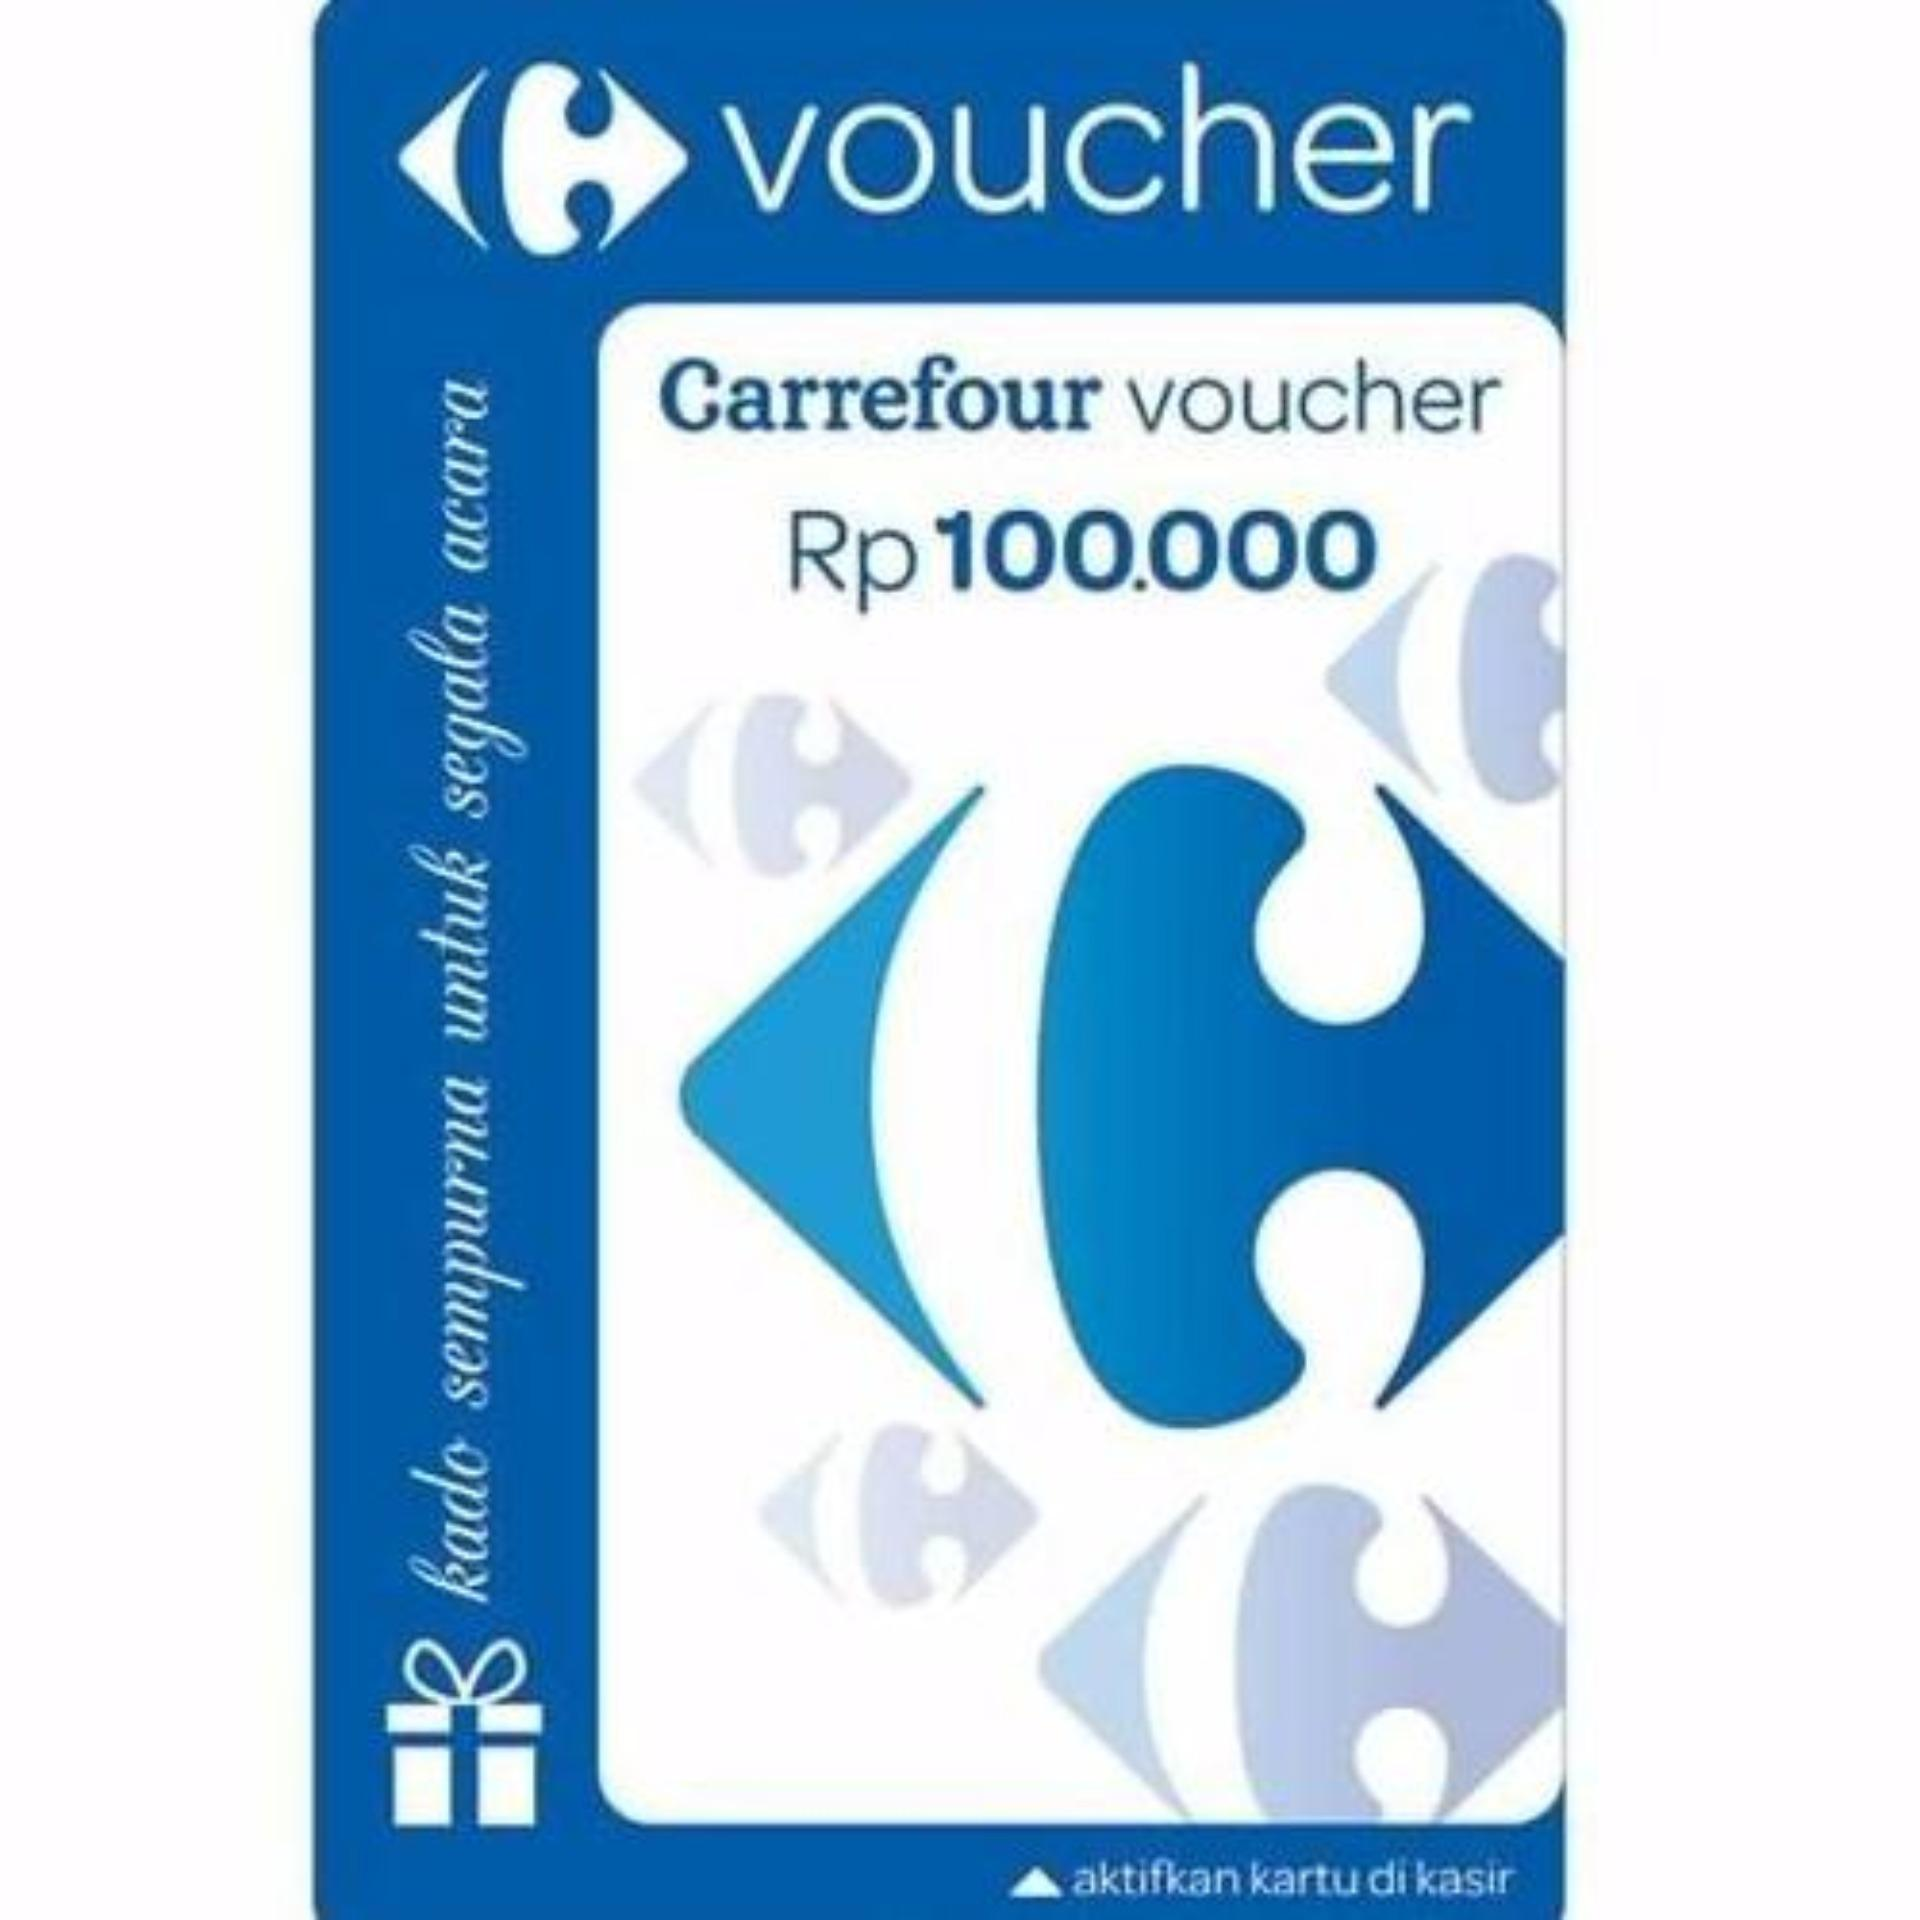 Voucher Carrefour nominal 500rb